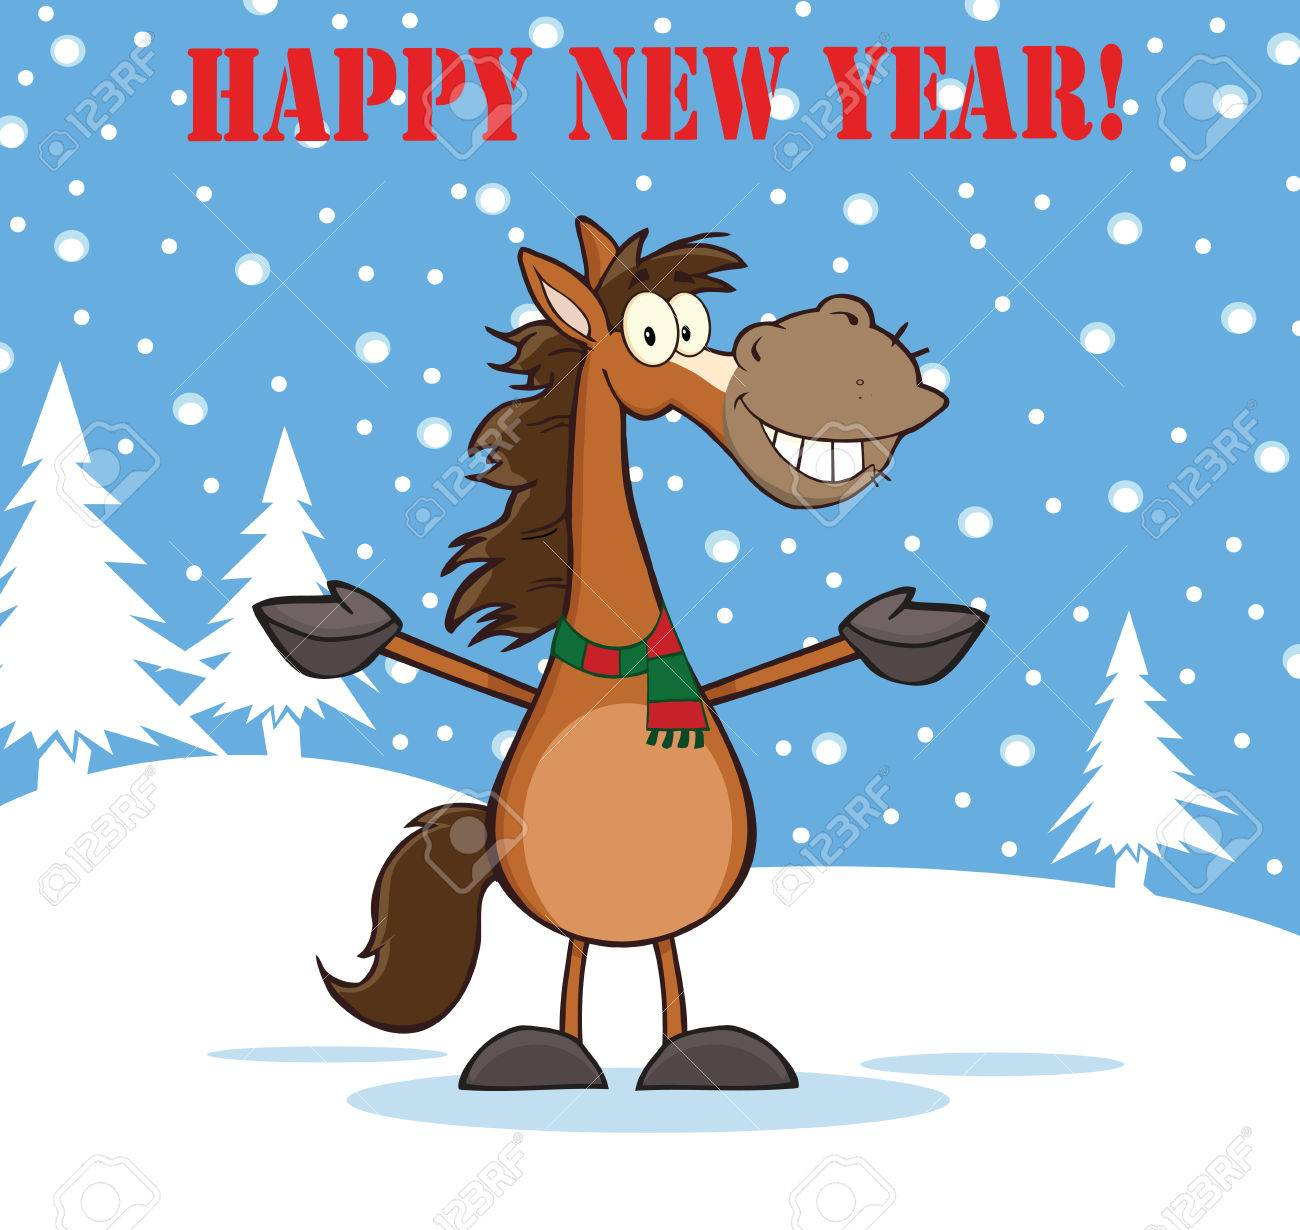 Happy New Year Horse Images 7